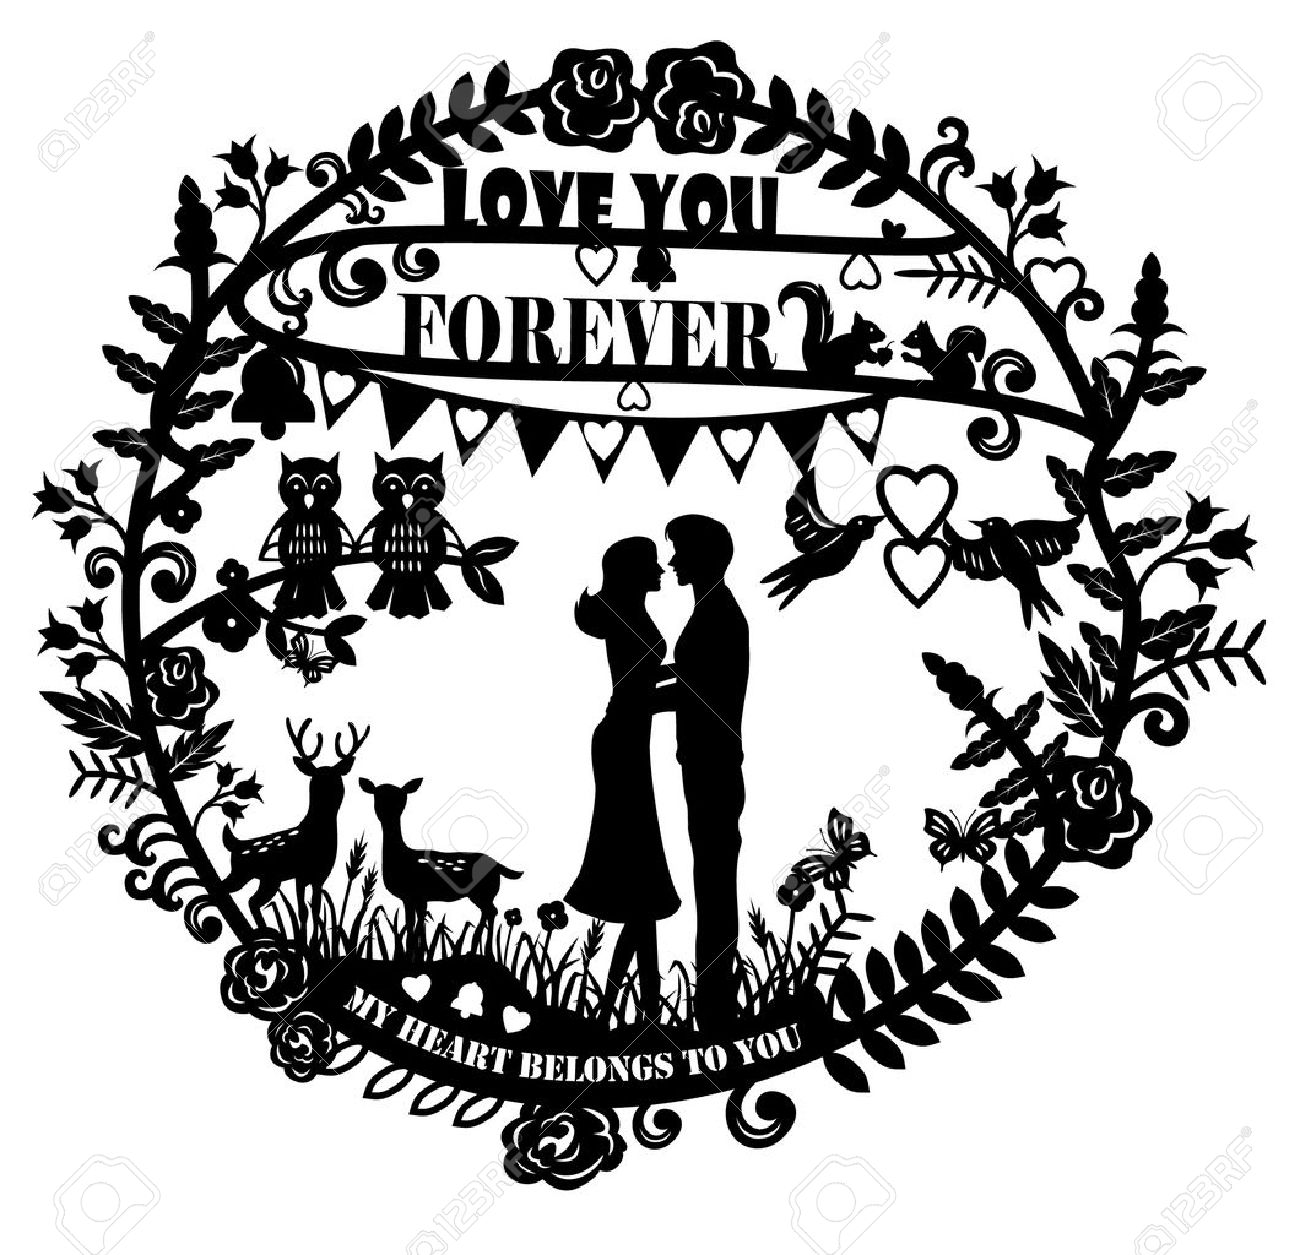 Paper cut arts - silhouette of man and woman hugging and animals couple with text love you forever - 35382148